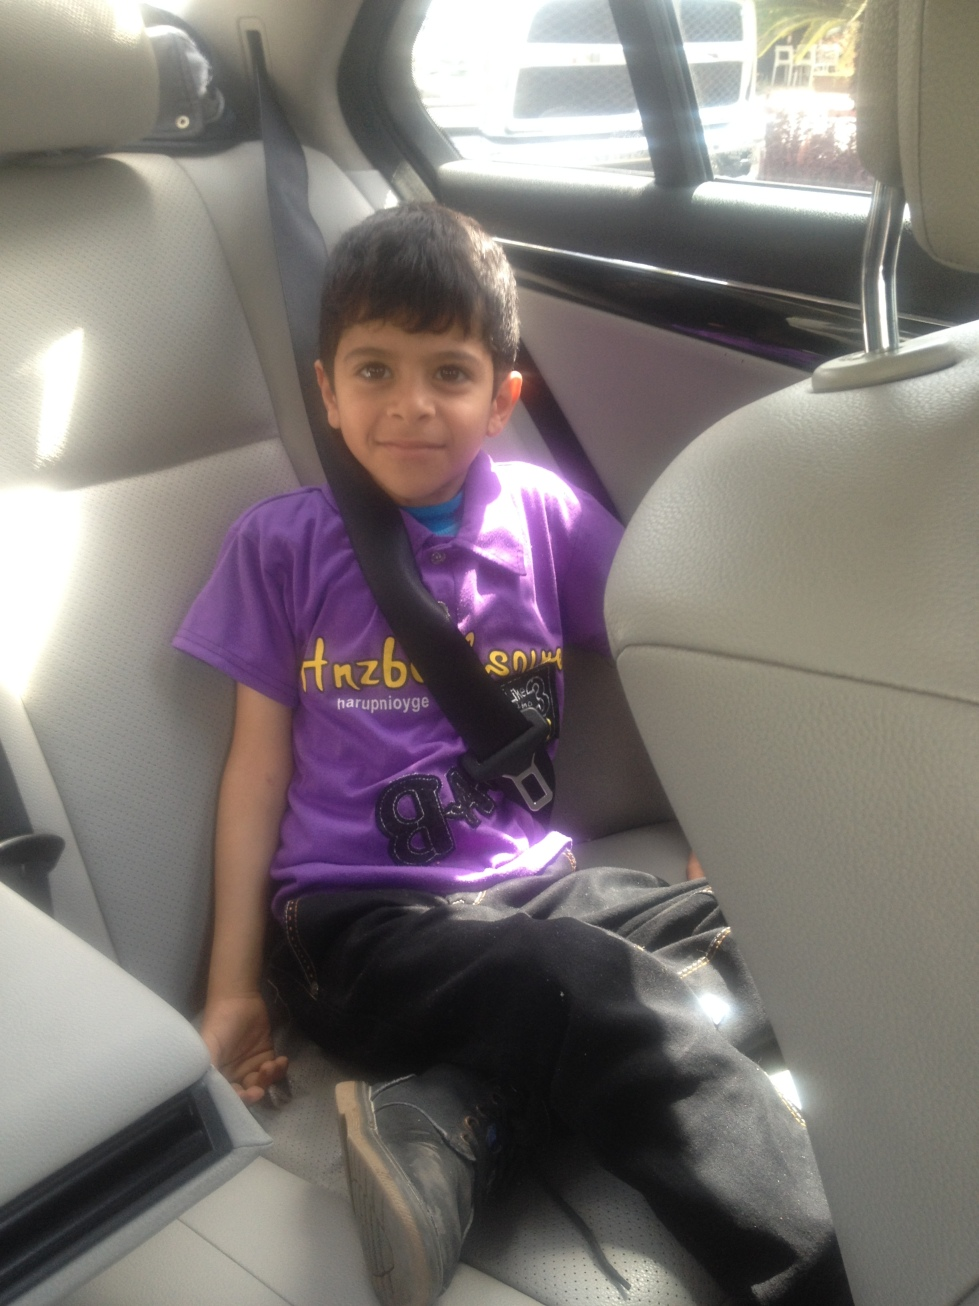 Abdallah in the car